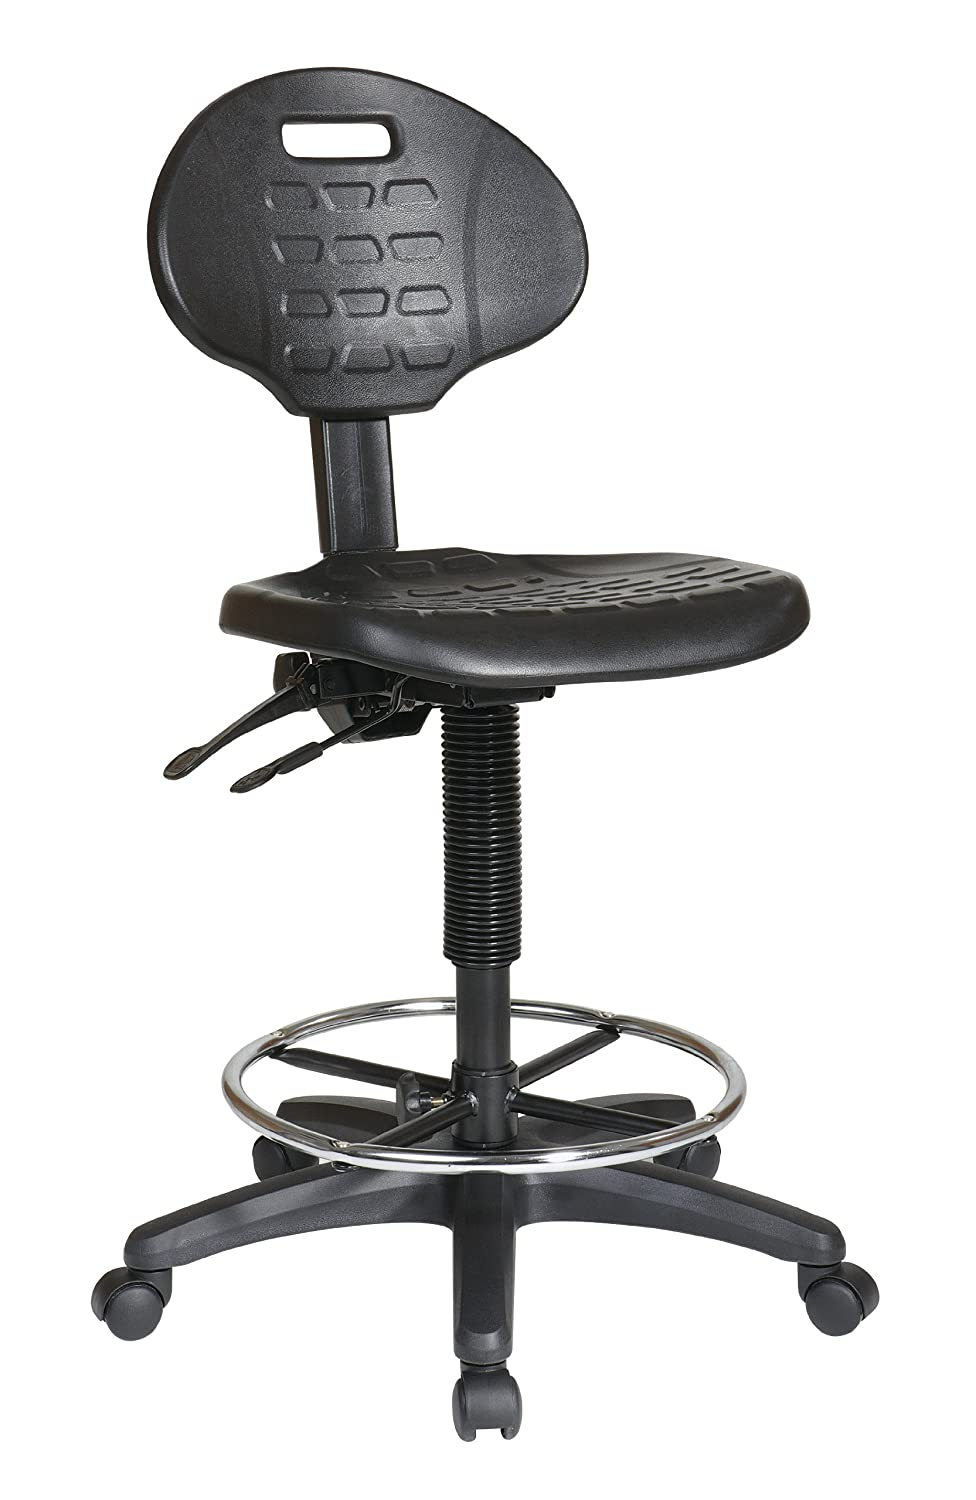 Amazon.com: Office Star Urethane Seat And Back Contour Intermediate Drafting  Chair With Adjustable Footrest And Multi Task Control, Black: Kitchen U0026  Dining